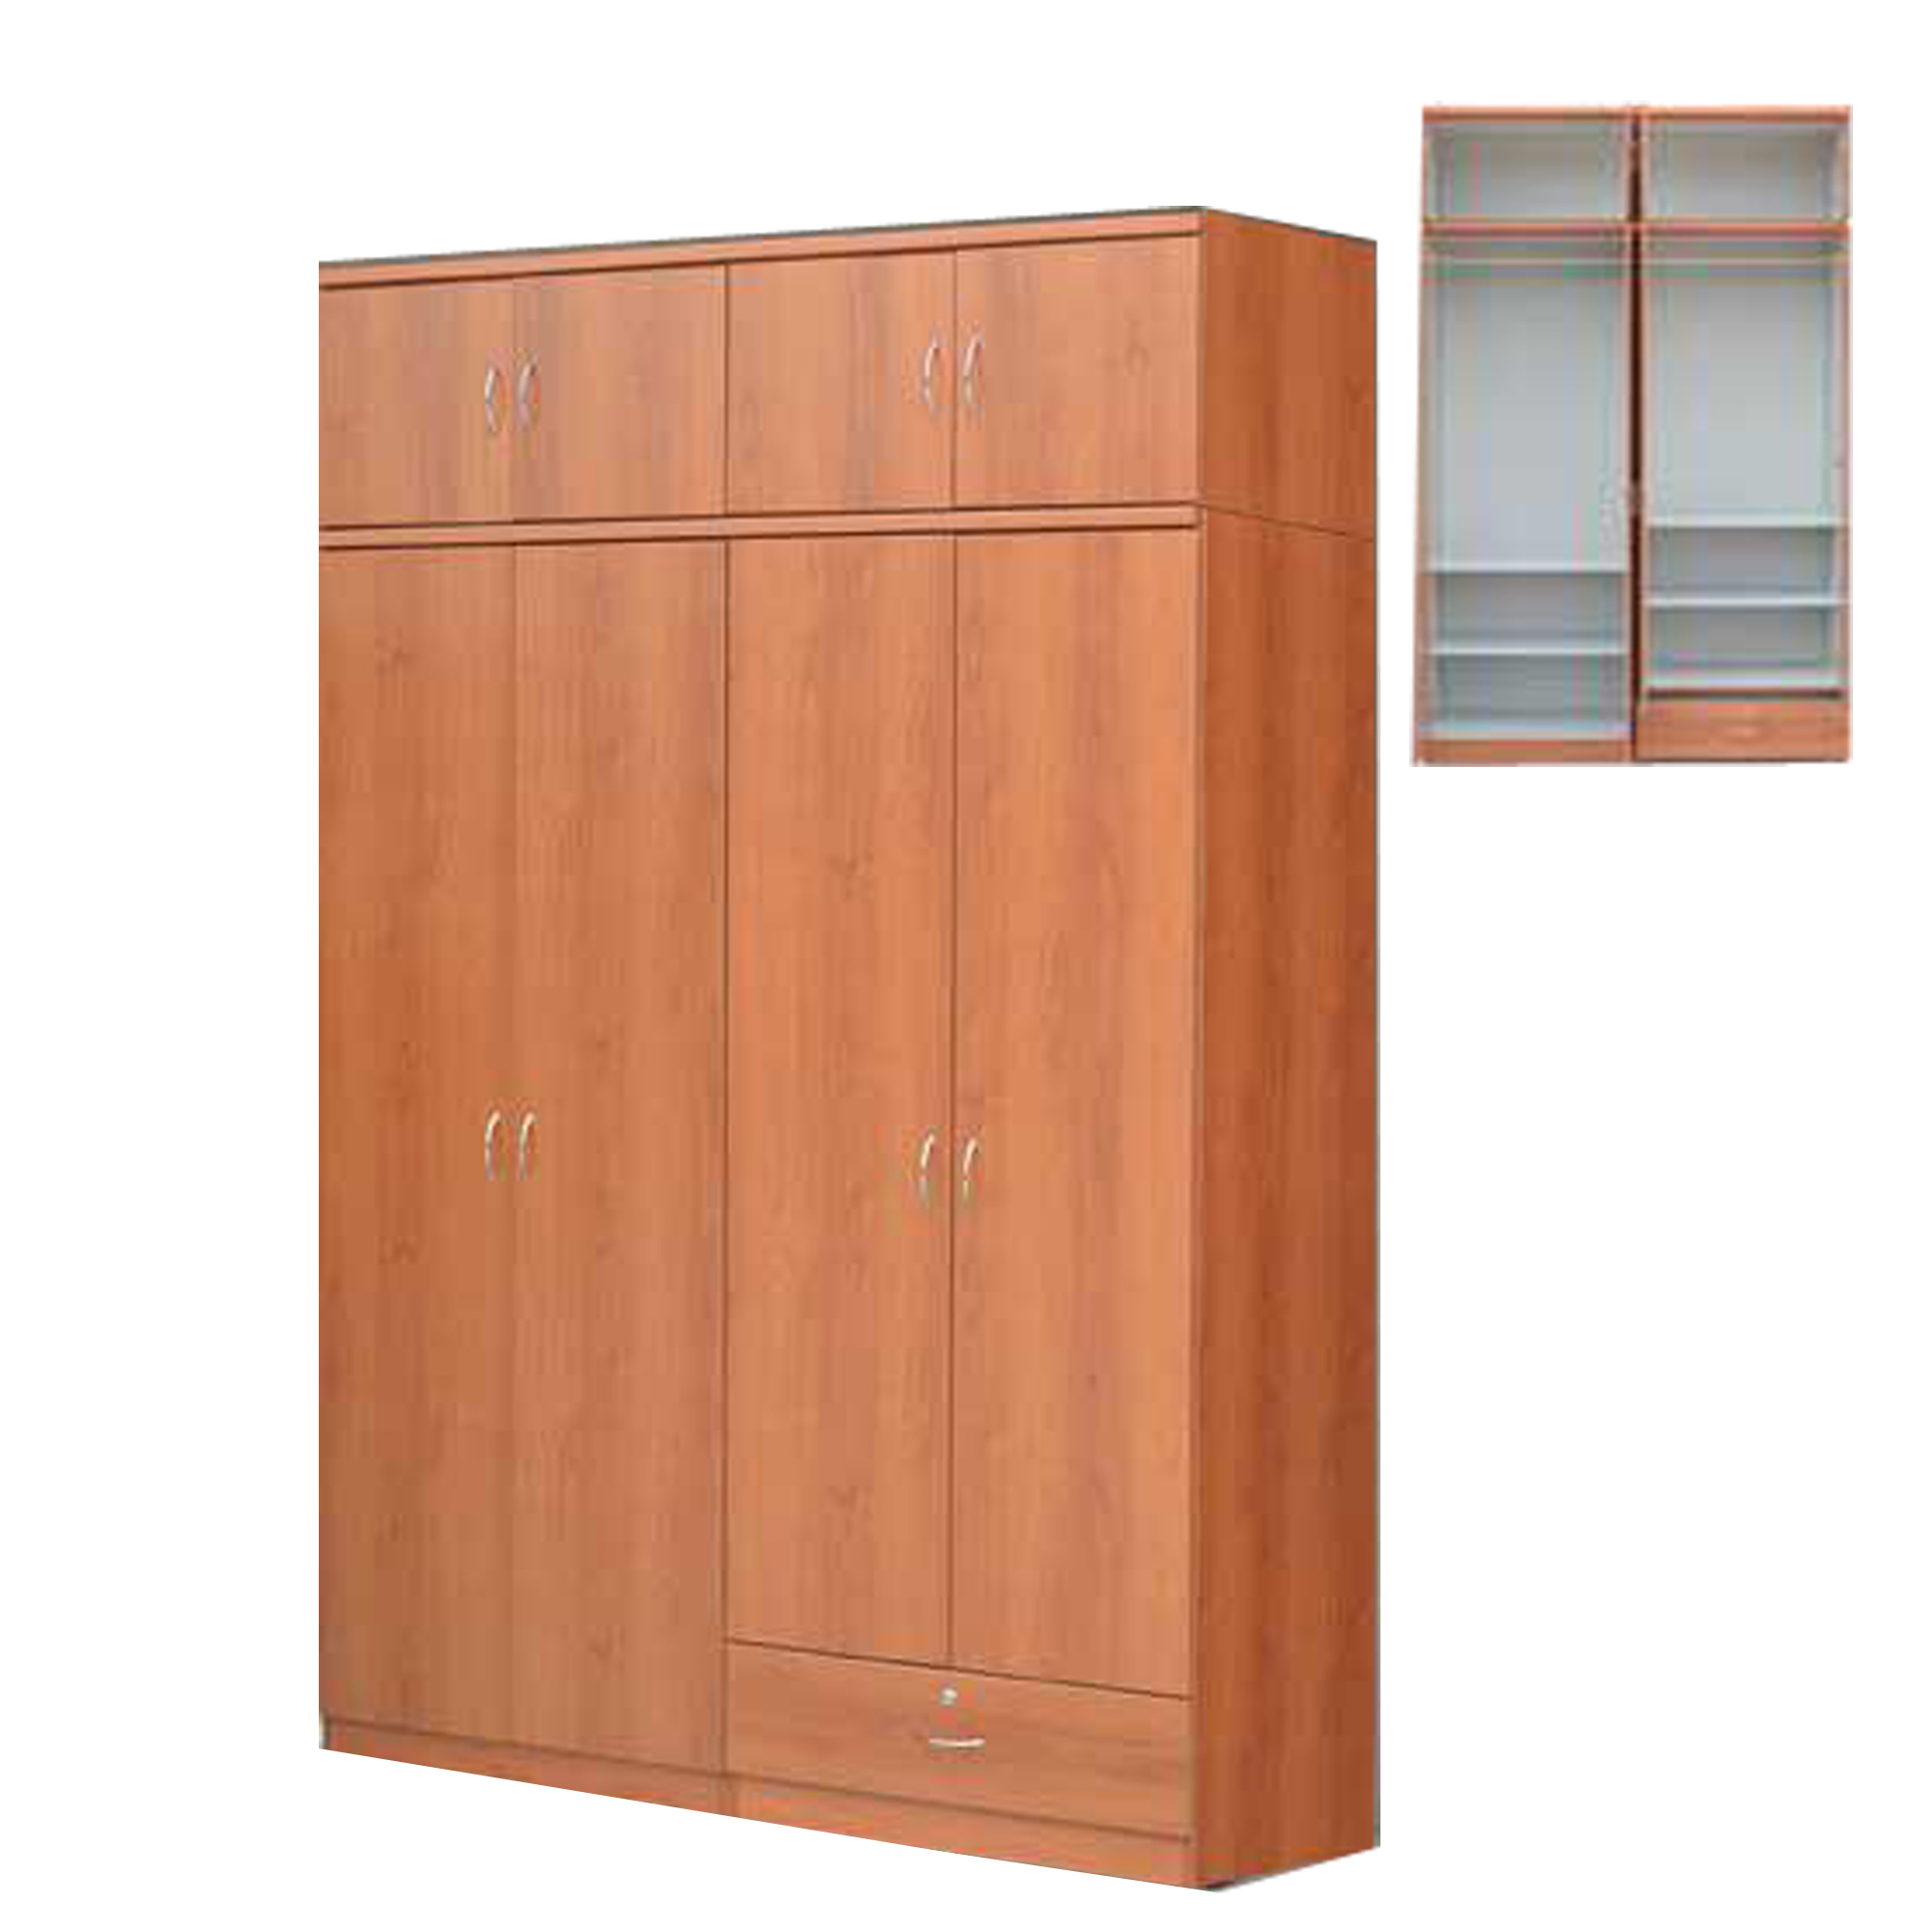 Zee 5ft 8 Doors Wardrobe With Drawer (Free Delivery and Installation)